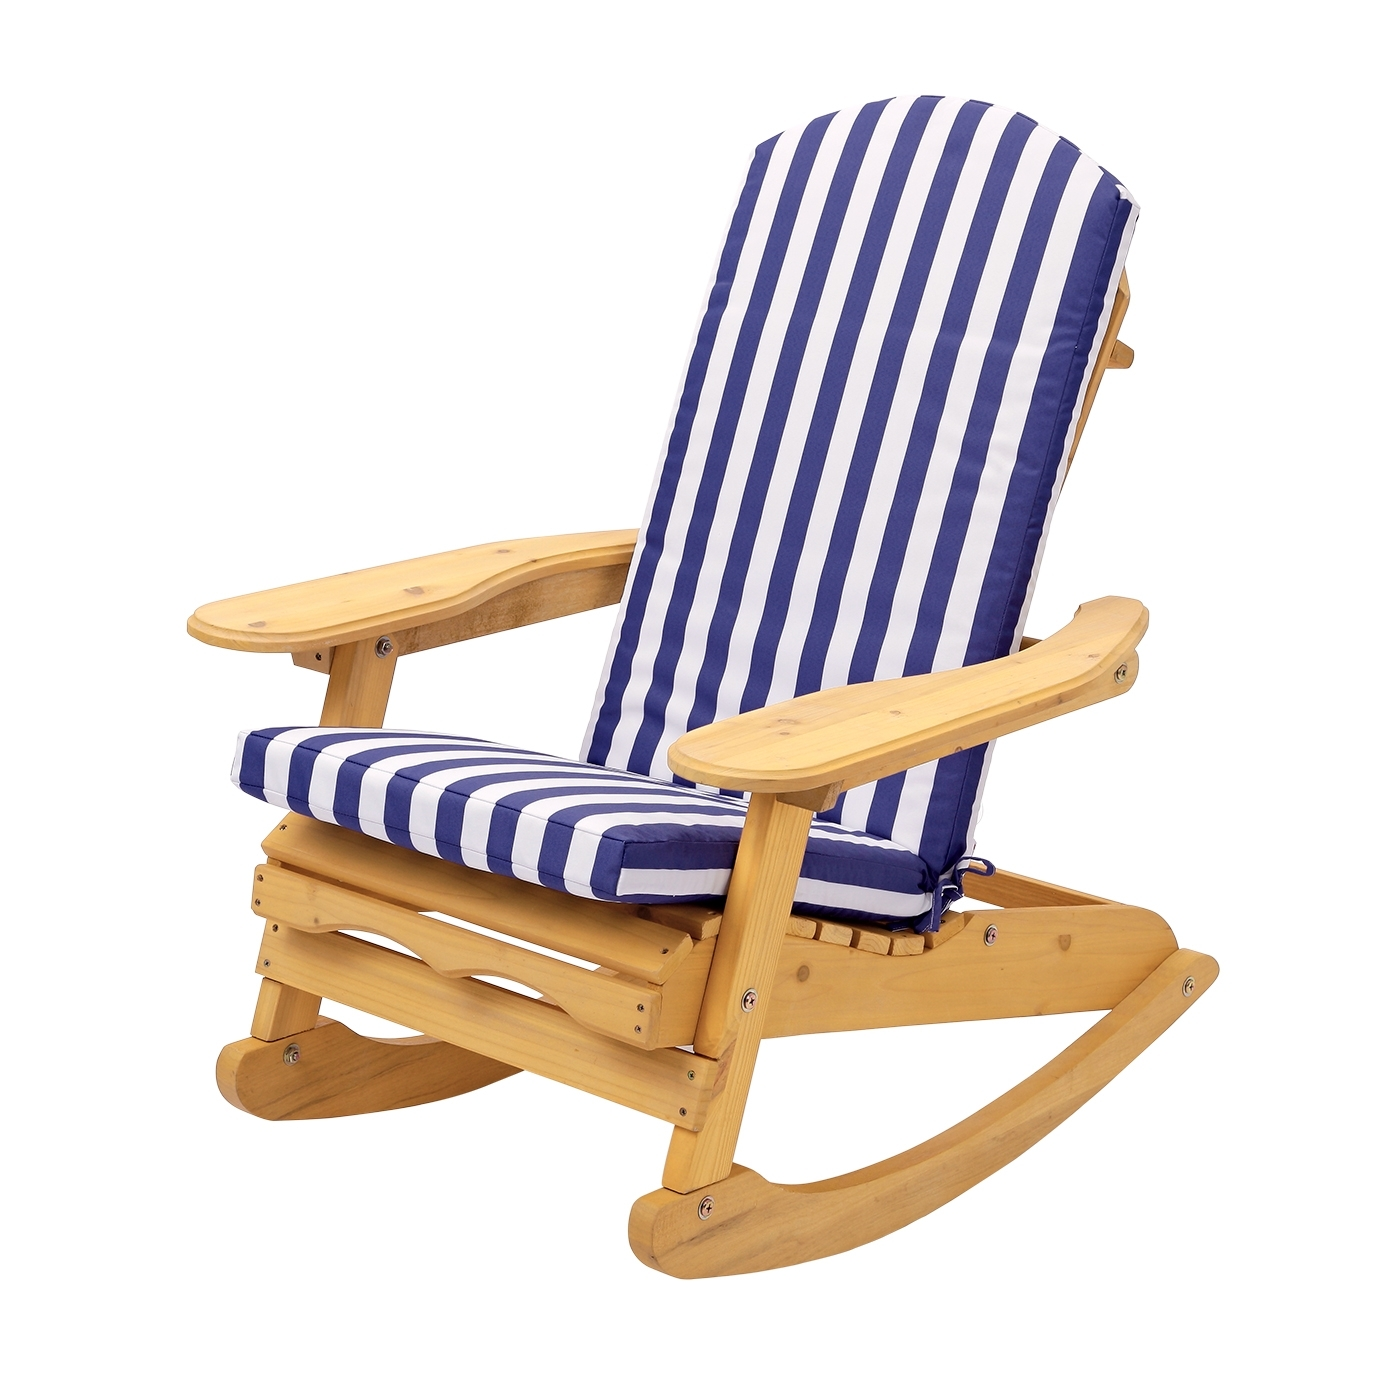 Rocking Chairs For Garden Pertaining To Most Up To Date Garden Patio Rocking Chair With Blue & White Striped Cushion (View 15 of 15)